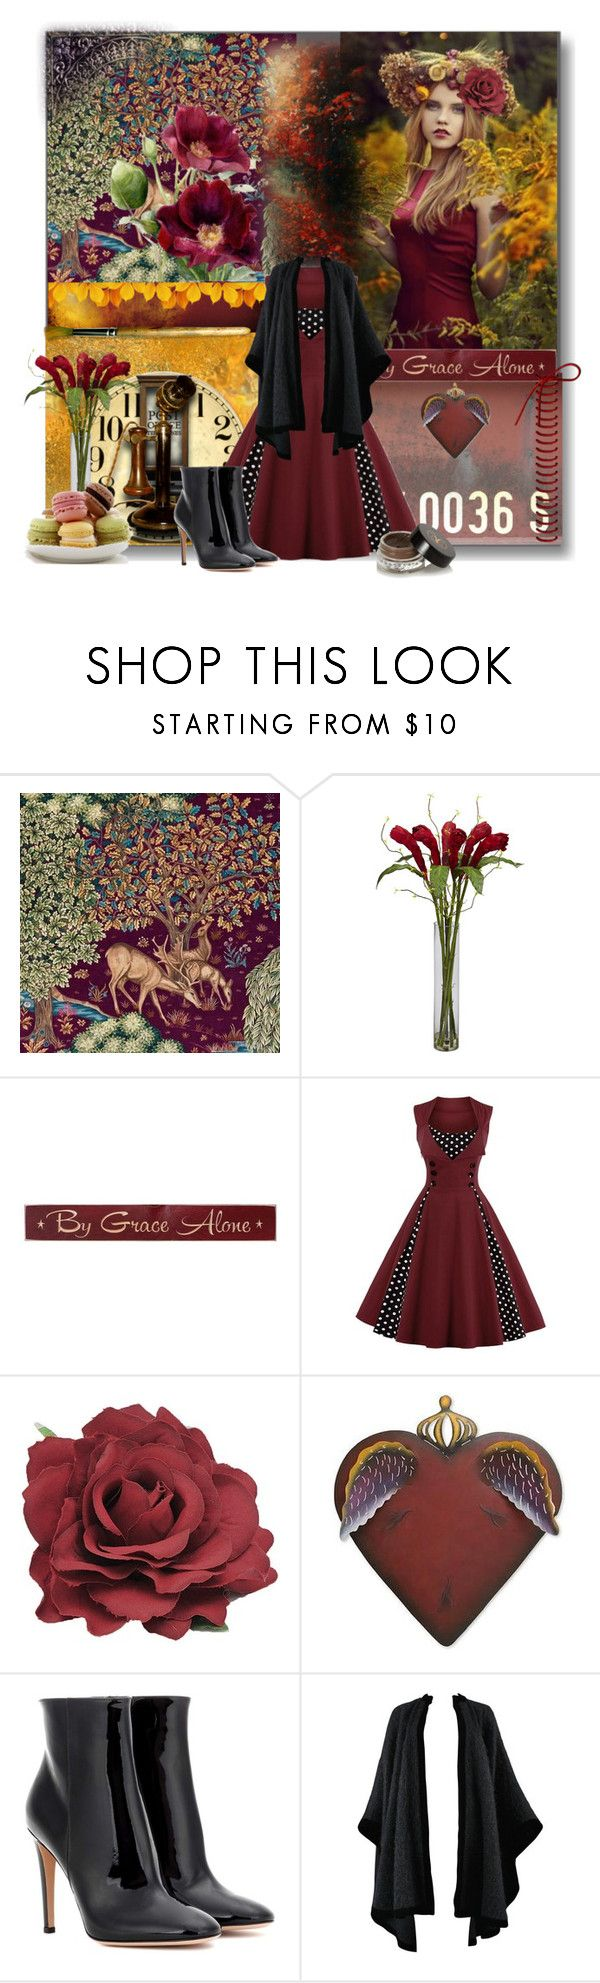 """""""Back To Nature....."""" by nz-carla ❤ liked on Polyvore featuring Nearly Natural, DutchCrafters, NOVICA, Gianvito Rossi, Yves Saint Laurent and Anastasia Beverly Hills"""